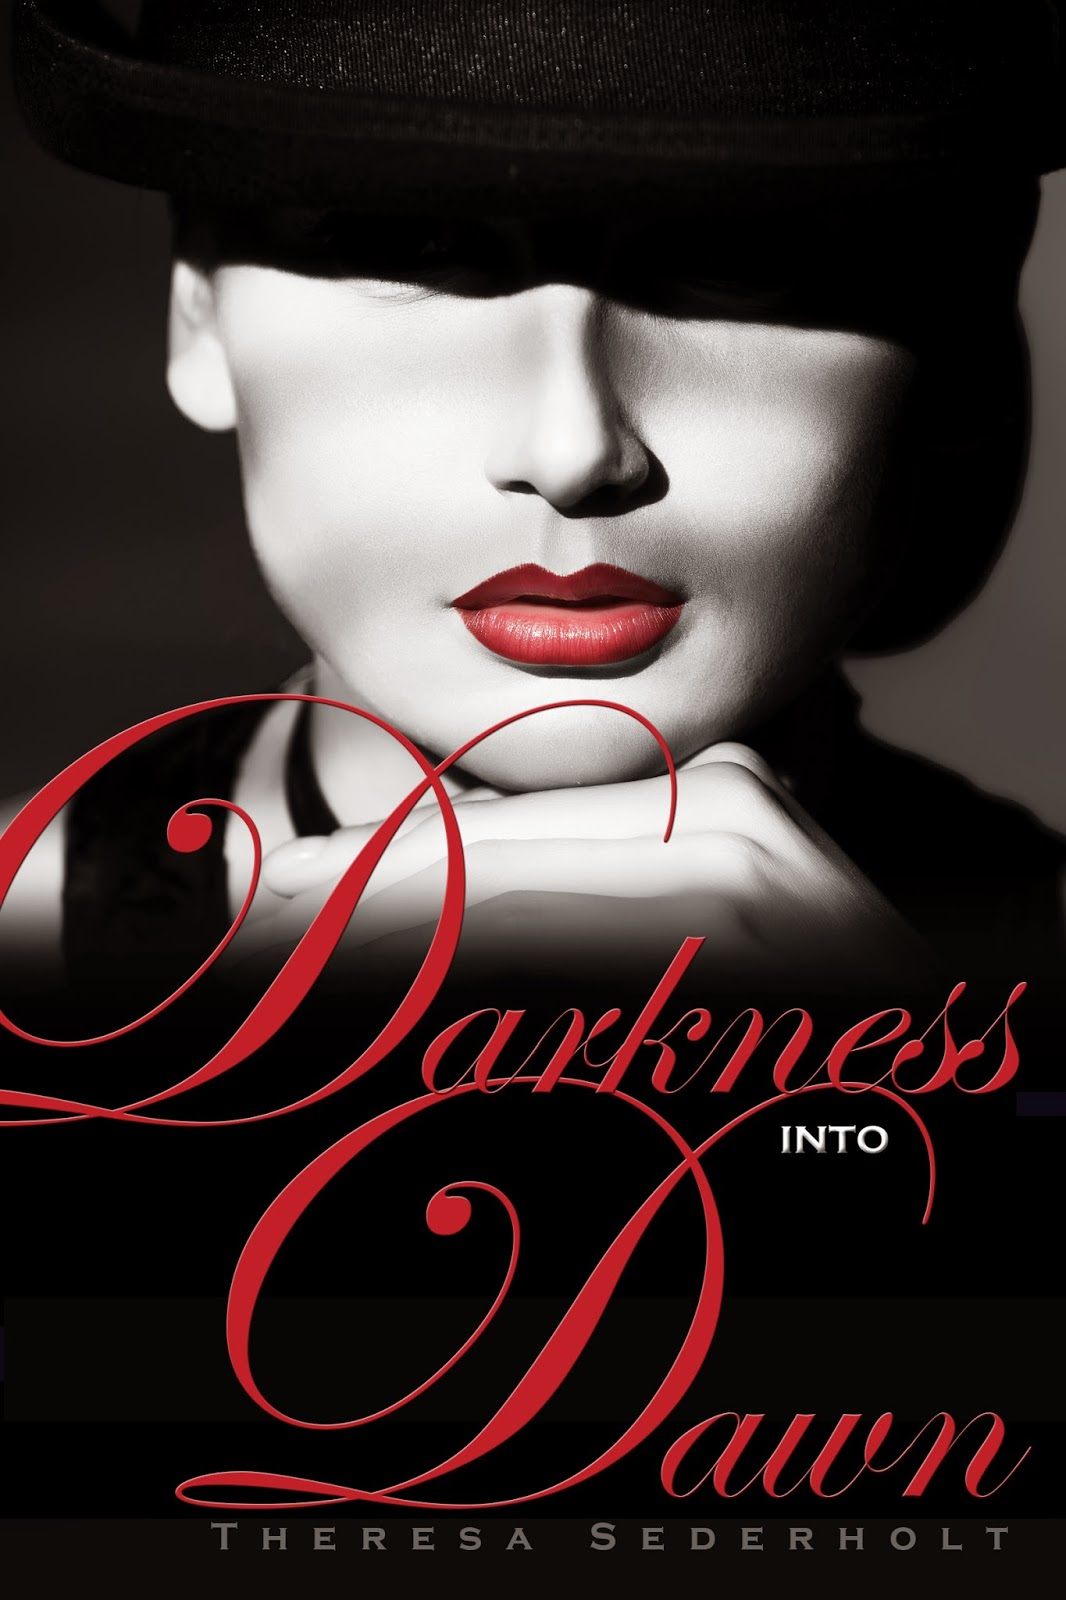 http://www.amazon.com/Darkness-into-Dawn-Unraveled-Trilogy-ebook/dp/B00Q5OWYXG/ref=as_sl_pc_qf_sp_asin_til?tag=ilolapo-20&linkCode=w00&linkId=3QLT3YLJQROKPIT5&creativeASIN=B00Q5OWYXG